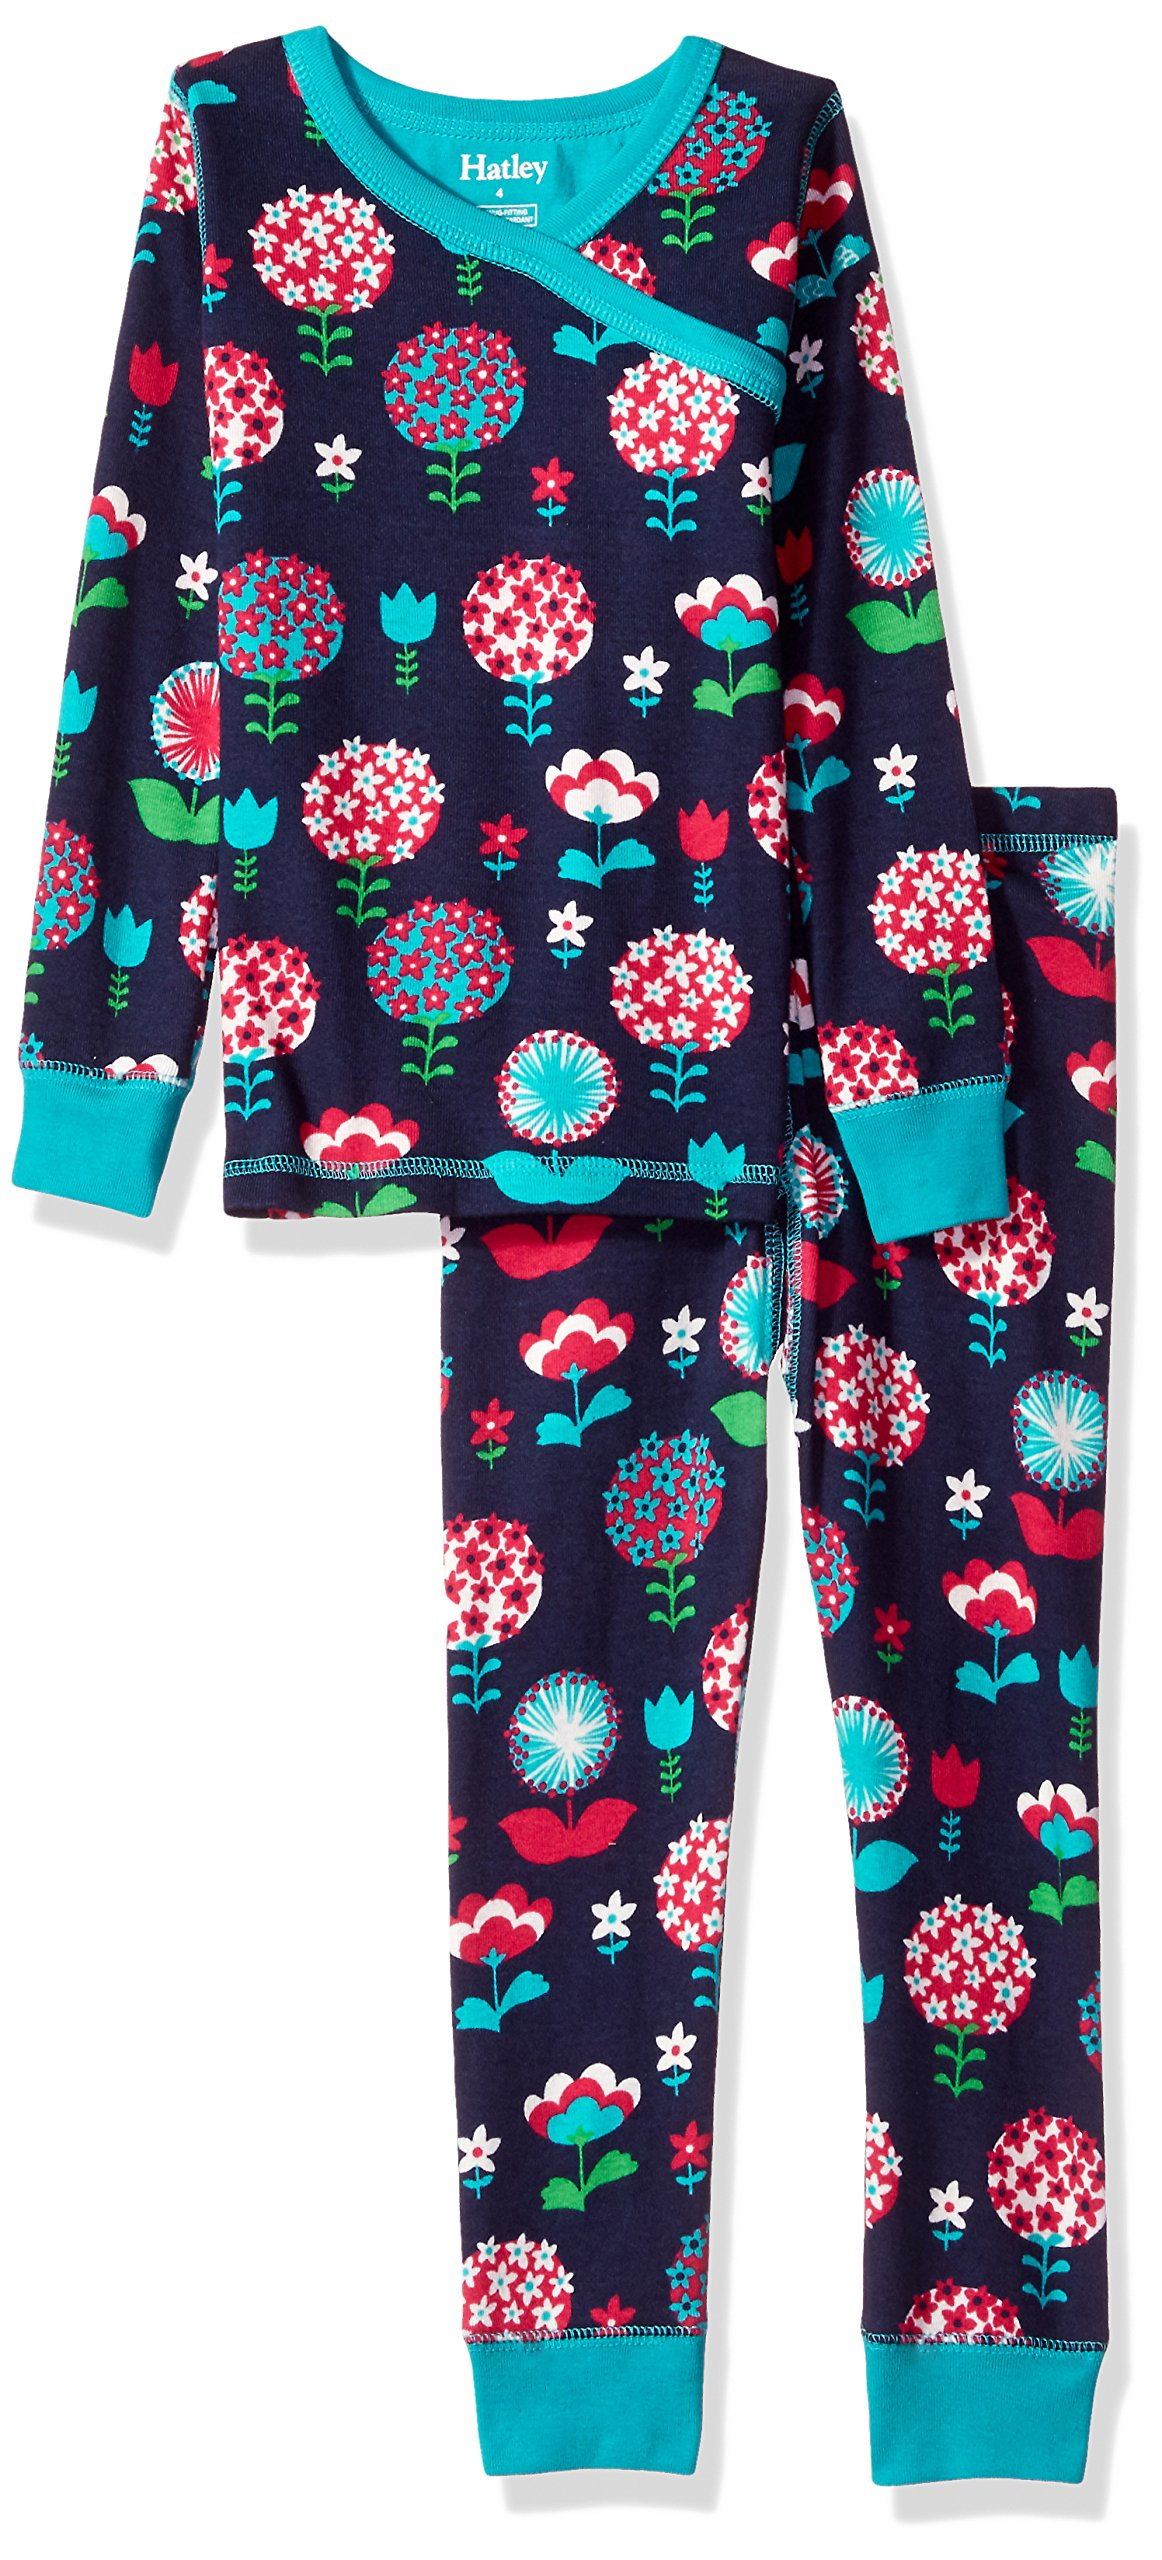 2483f20c14c11a Galleon - Hatley Girls' Little Organic Cotton Long Sleeve Printed Pajama  Sets, Harvest Floral, 4 Years